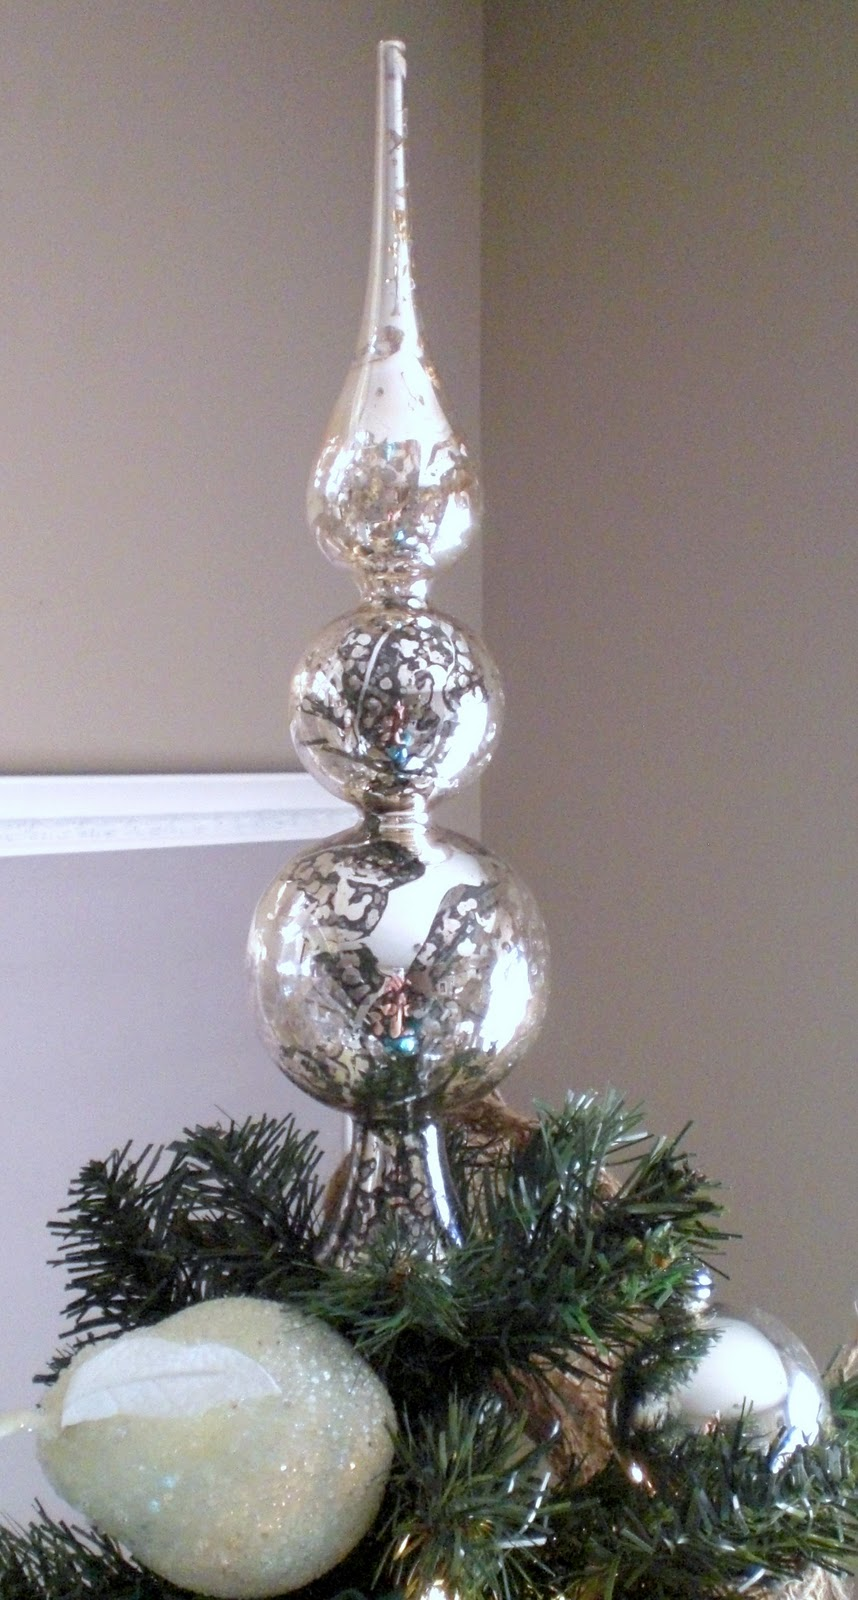 12th and white our christmas tree and diy ornaments. Black Bedroom Furniture Sets. Home Design Ideas